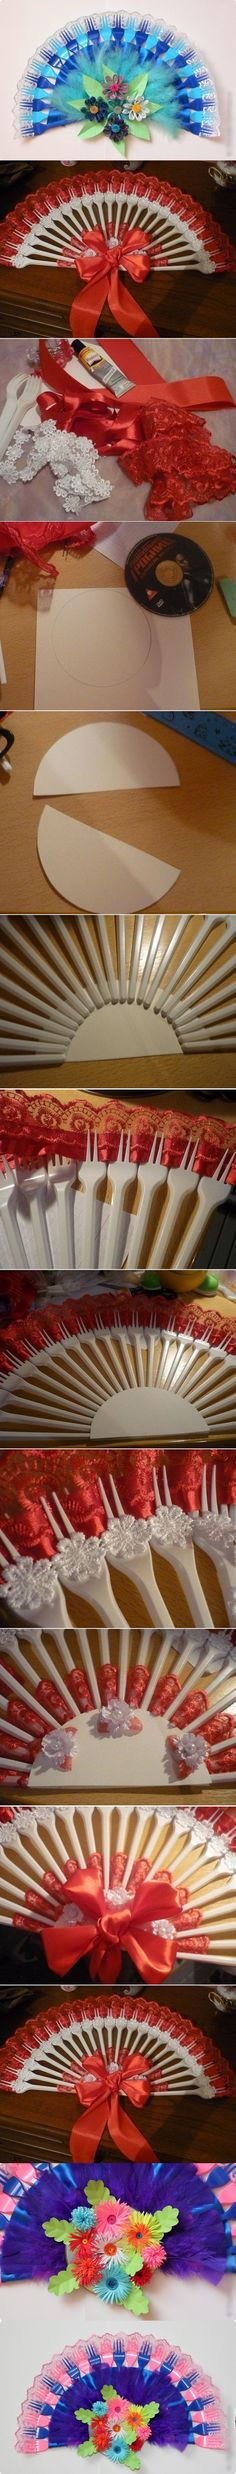 Wonderful DIY Disposable Fork Fan | WonderfulDIY.com.. using forks, craft glue, ribbon, flowers, feathers, and a semi circle plate for the middle to glue the forks and stuff on..